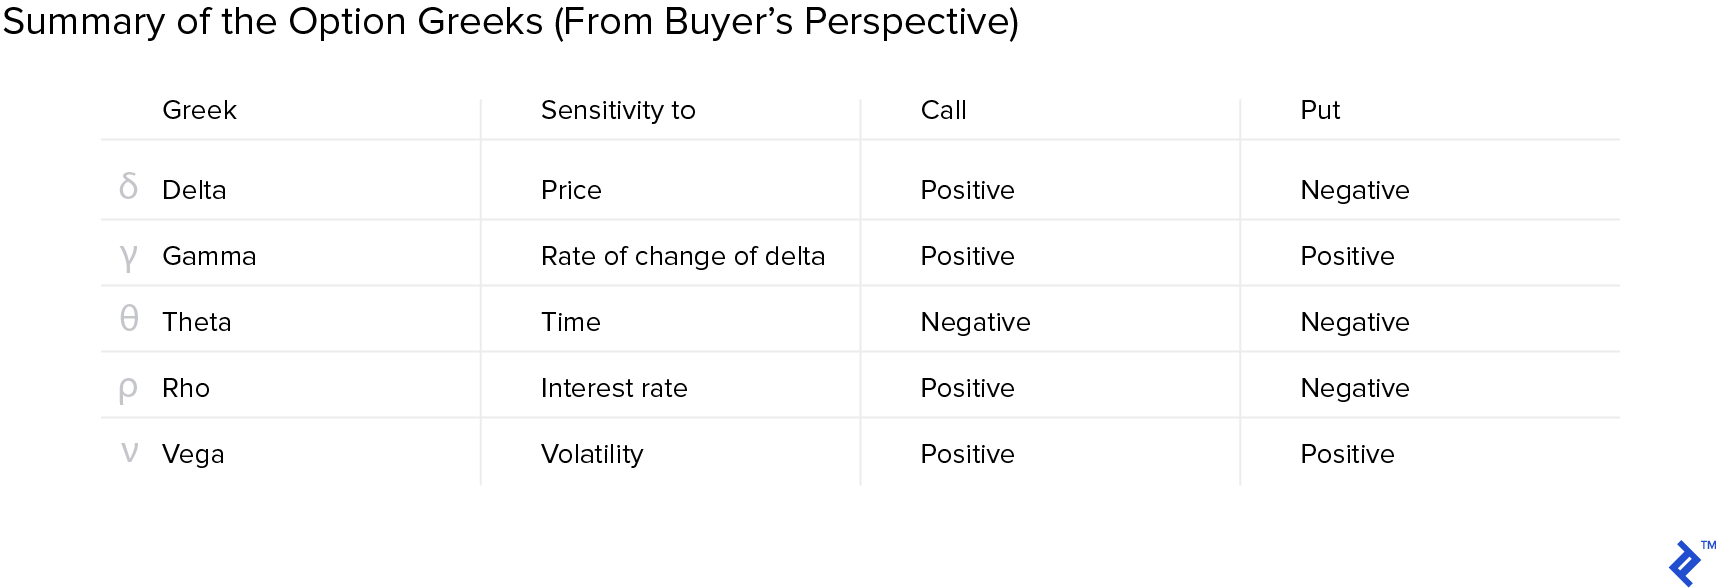 Summary of the option Greeks from a buyer's perspective